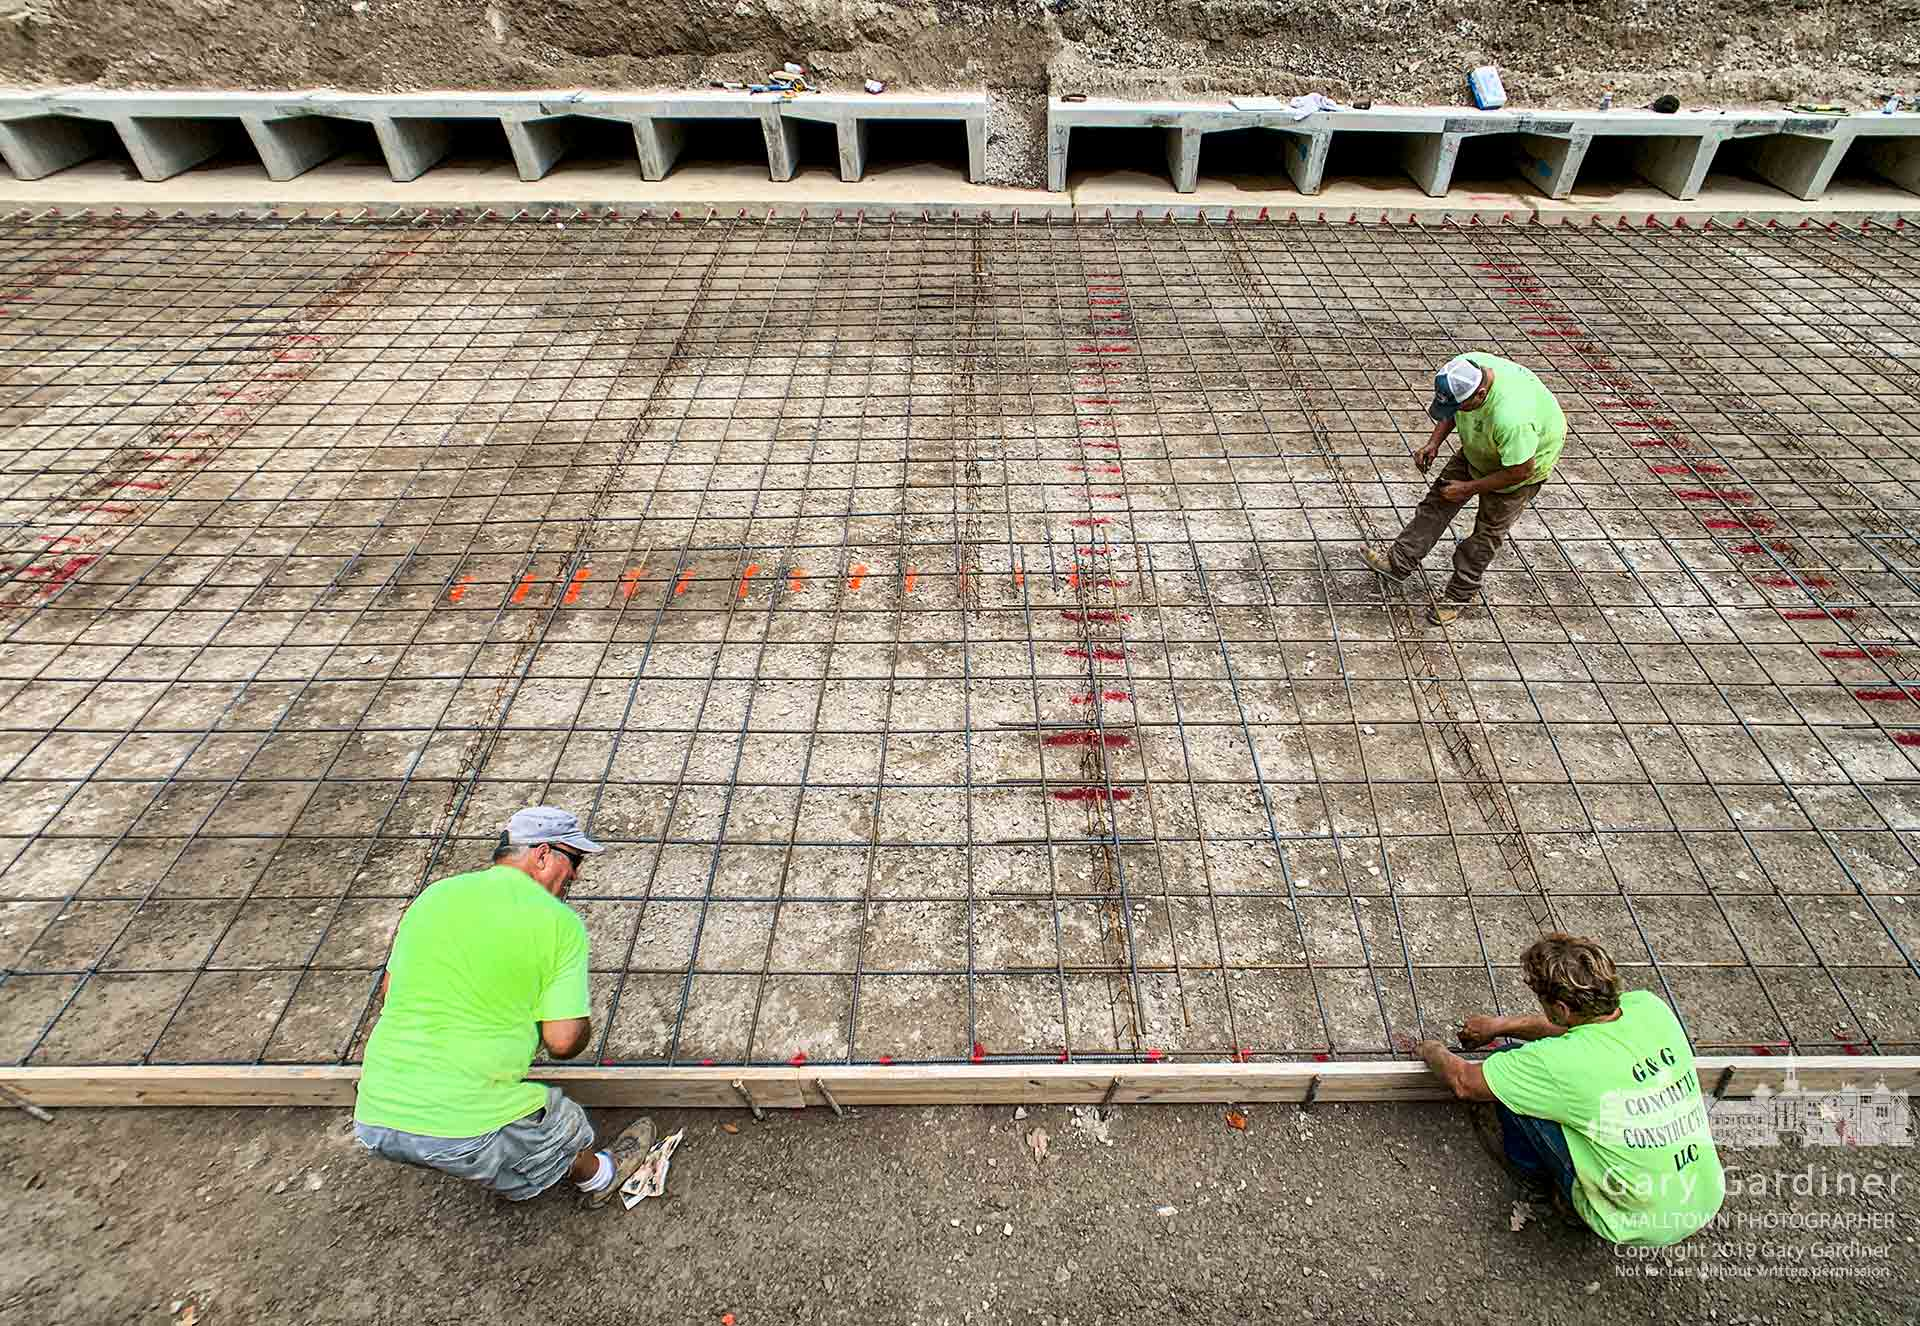 Workers tie off sections of reinforcing rebar into what will be the concrteflooring for the section section of the storm water runoff holding tank beneath Spring Road at Lincoln. My Final Photo for Aug. 21, 2019.